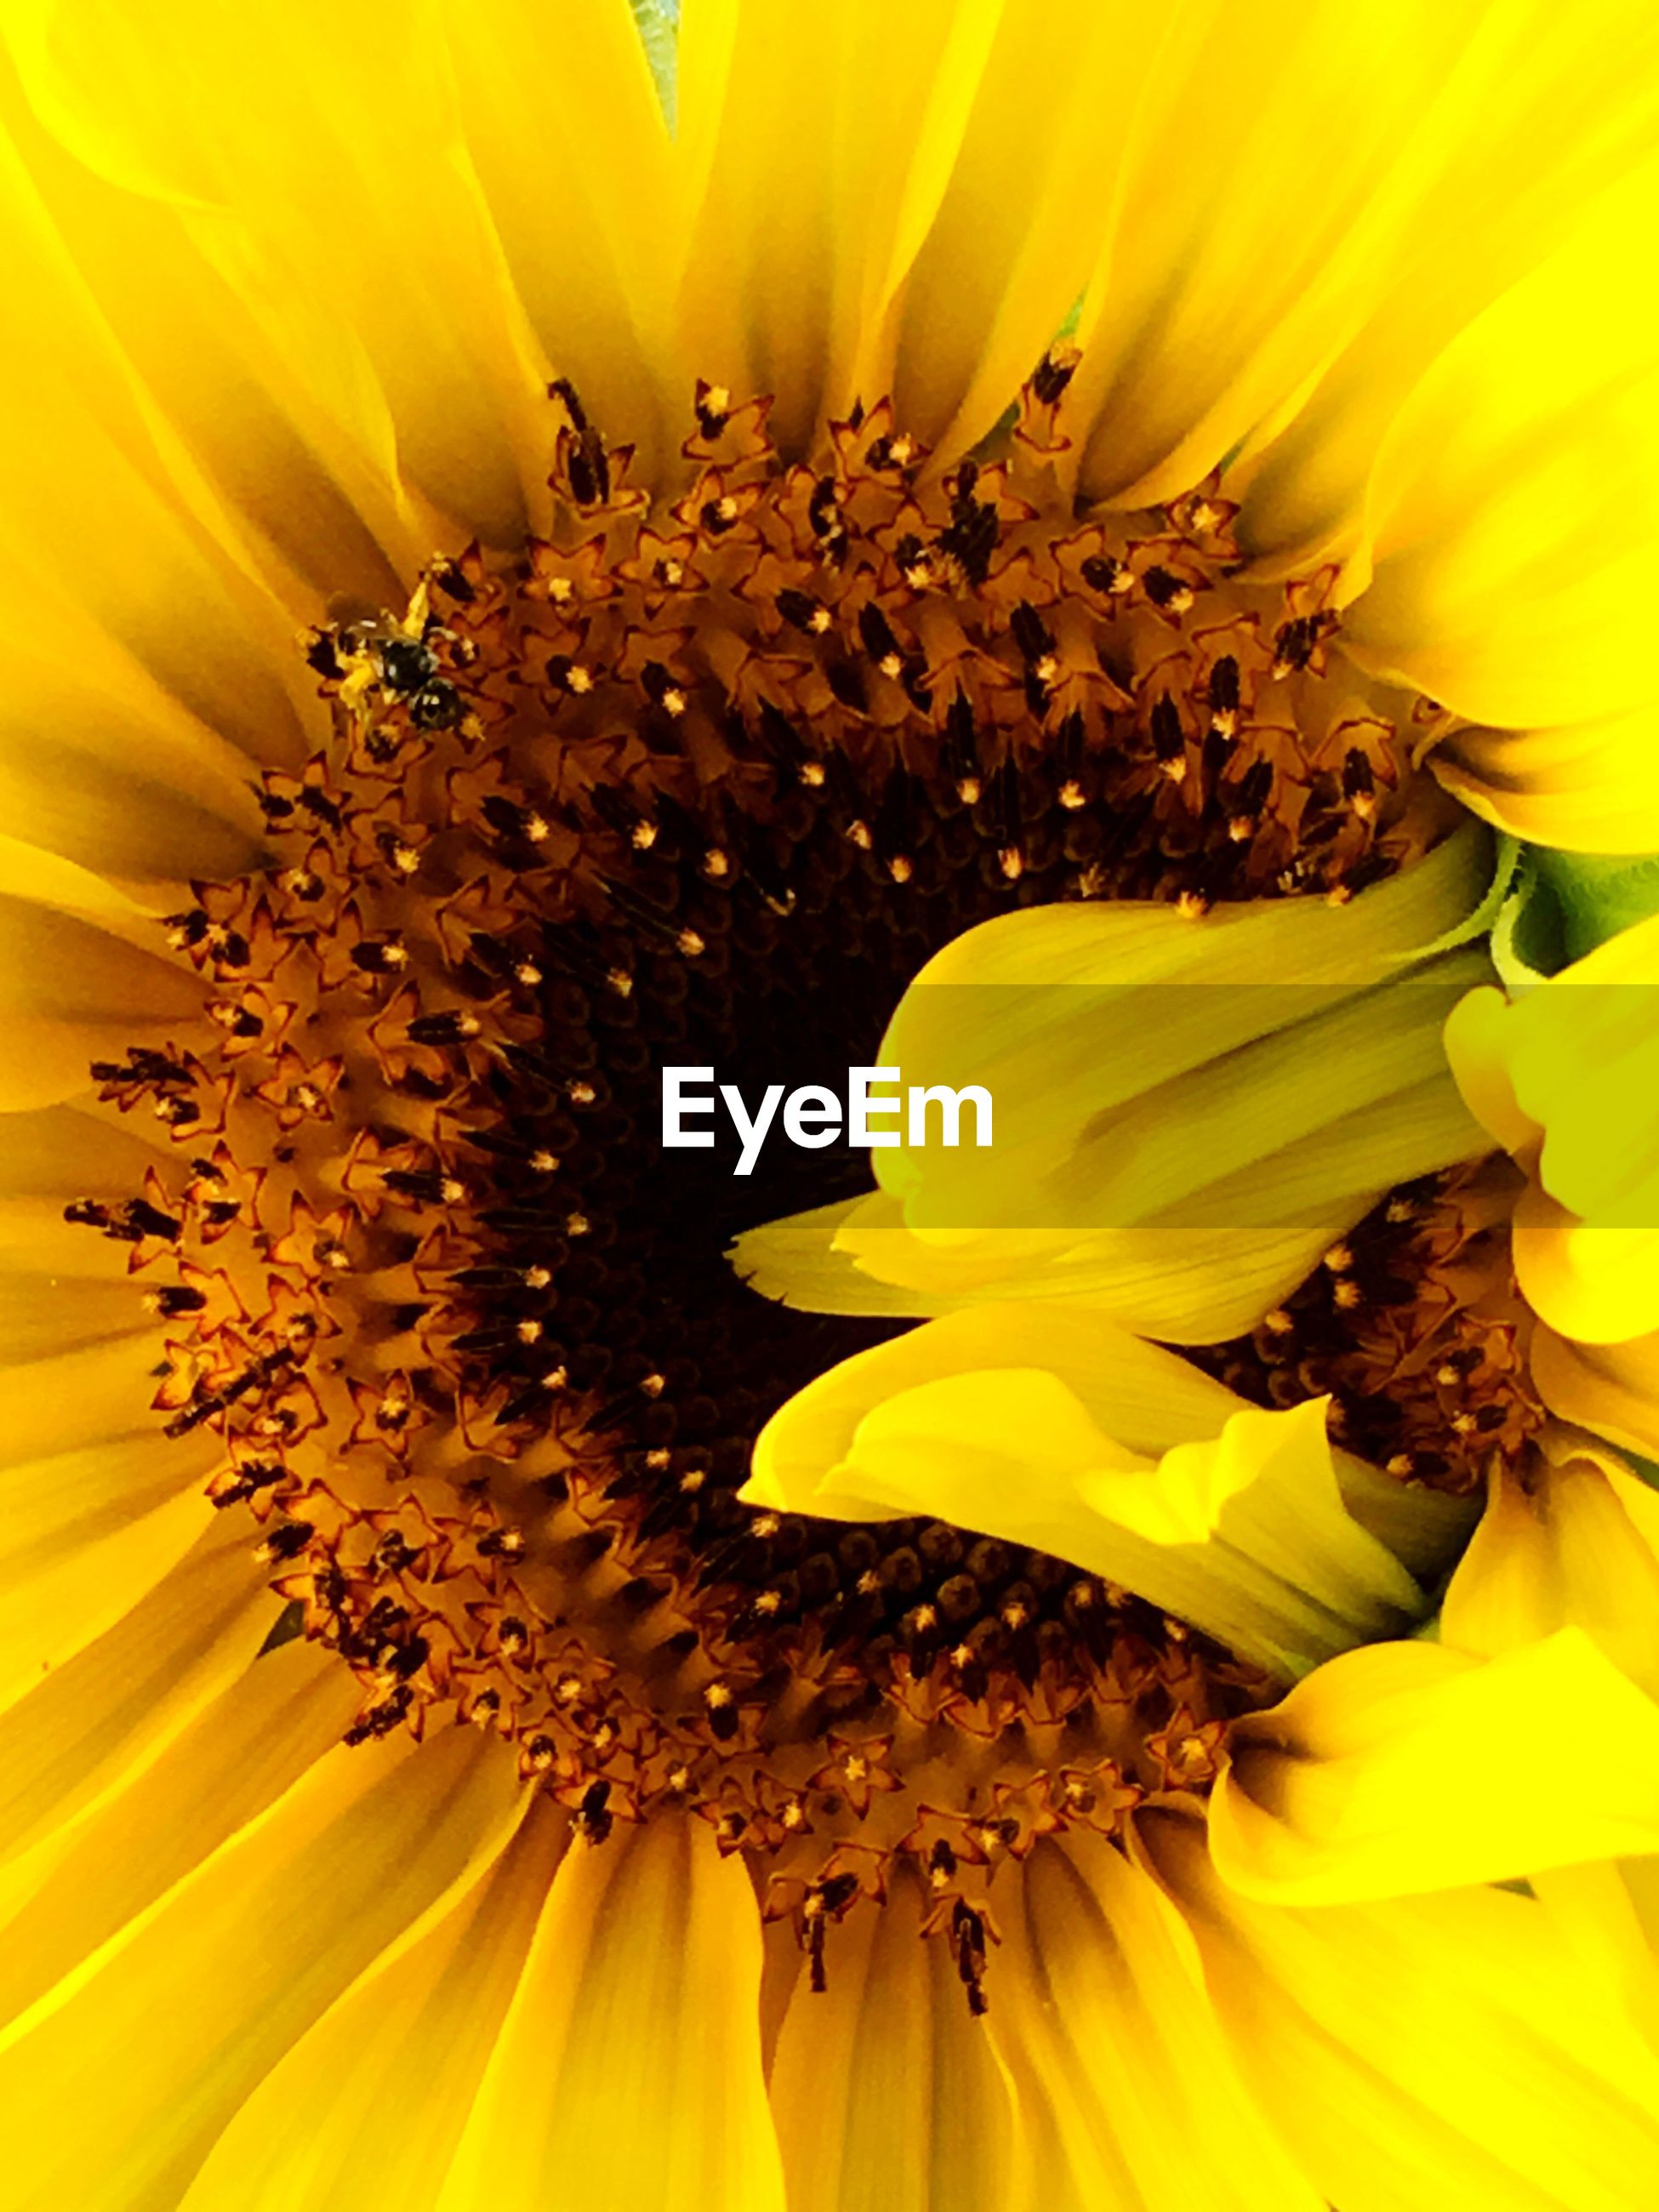 yellow, flower head, flower, petal, freshness, fragility, beauty in nature, close-up, backgrounds, macro, blossom, vibrant color, springtime, single flower, extreme close-up, full frame, stamen, nature, growth, elegance, selective focus, in bloom, season, detail, botany, pollen, sunflower, softness, exoticism, bloom, soft focus, pistil, design, extreme close up, exotic, day